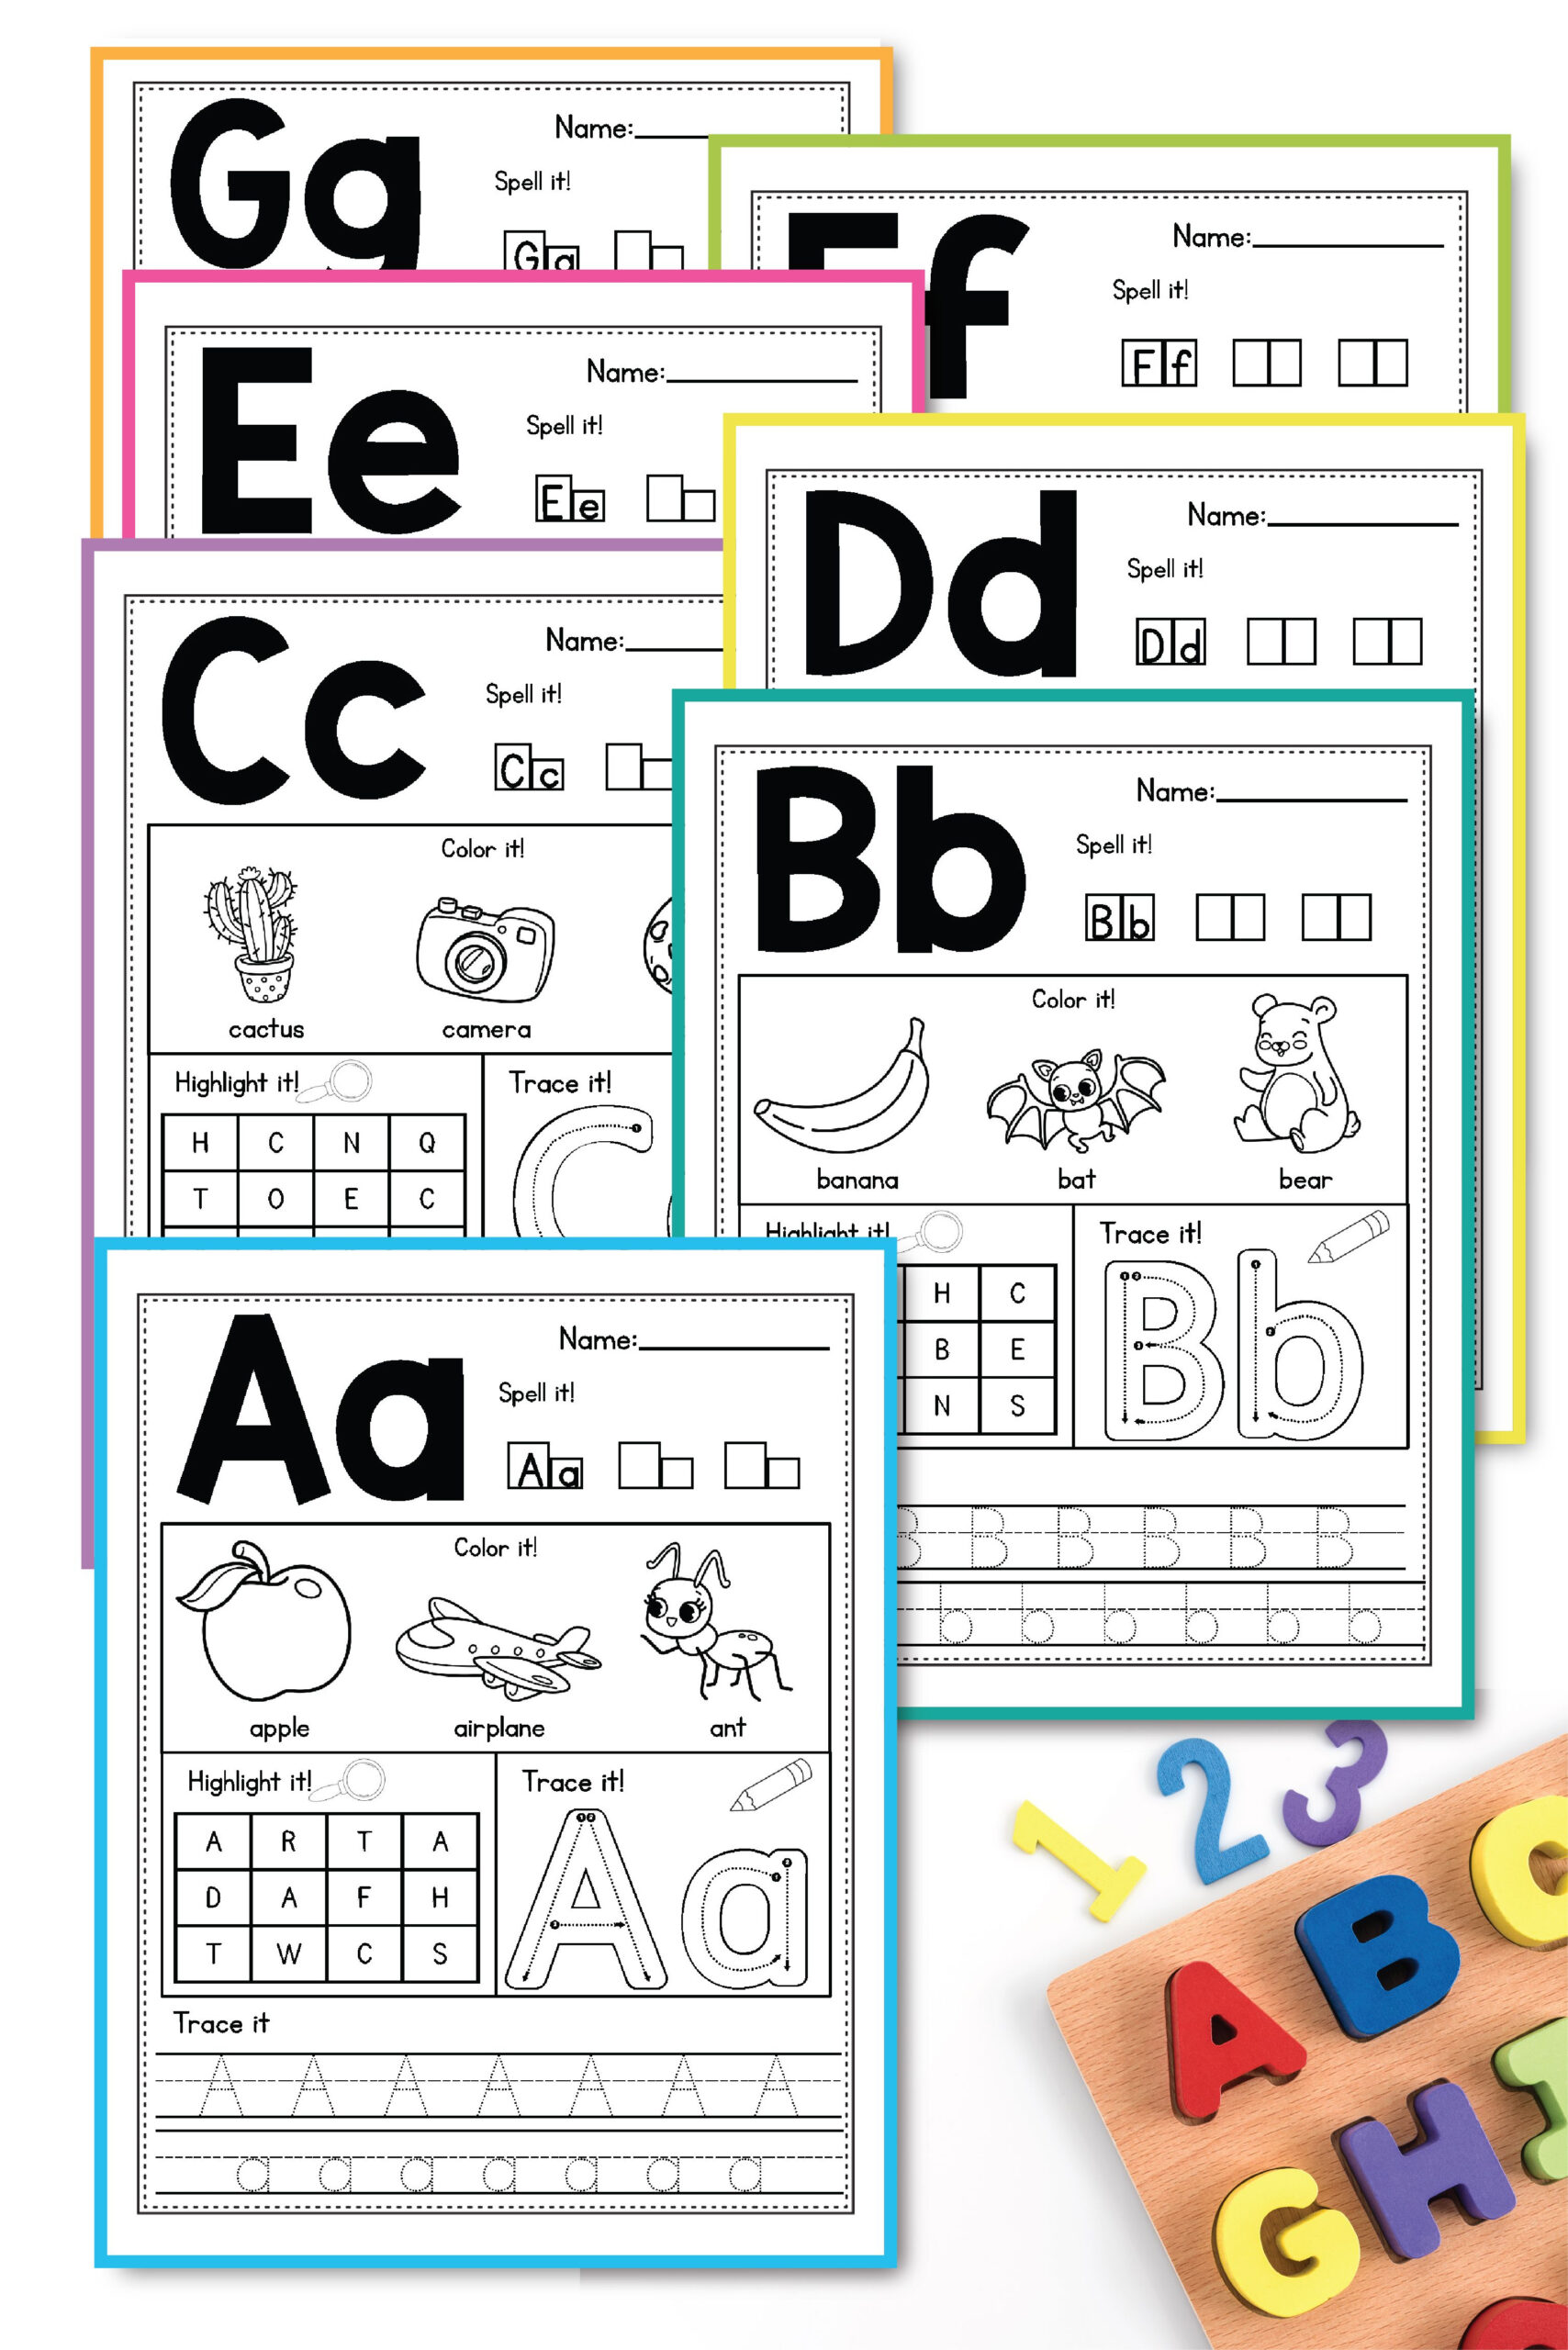 Alphabet Worksheets A-Z Beginning Sounds Activities with regard to Alphabet Worksheets Az